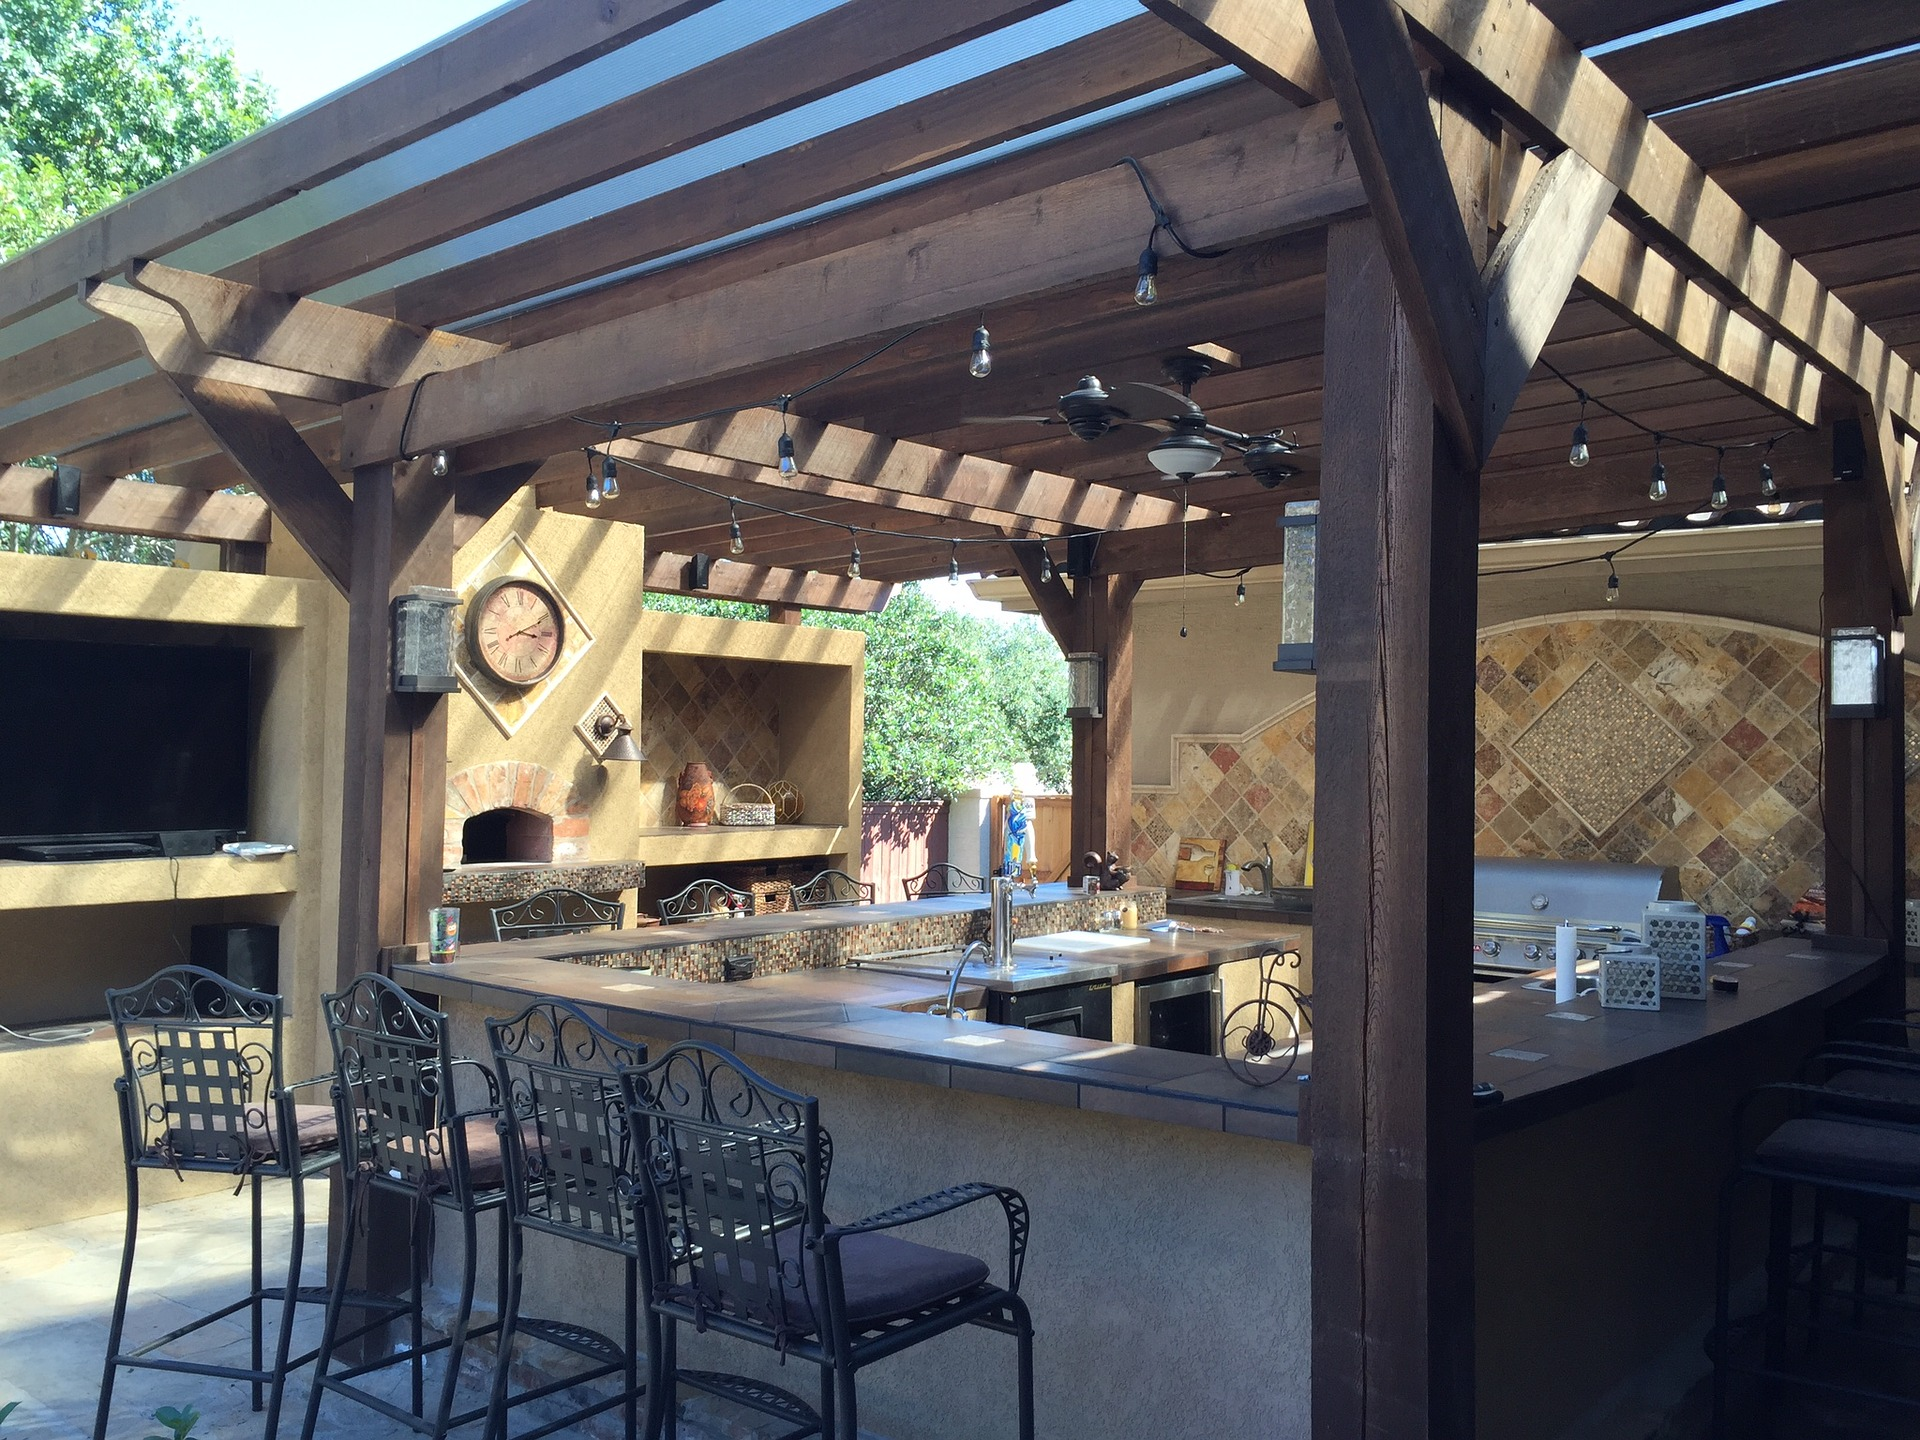 How to cover your outdoor kitchen and use it throughout the year